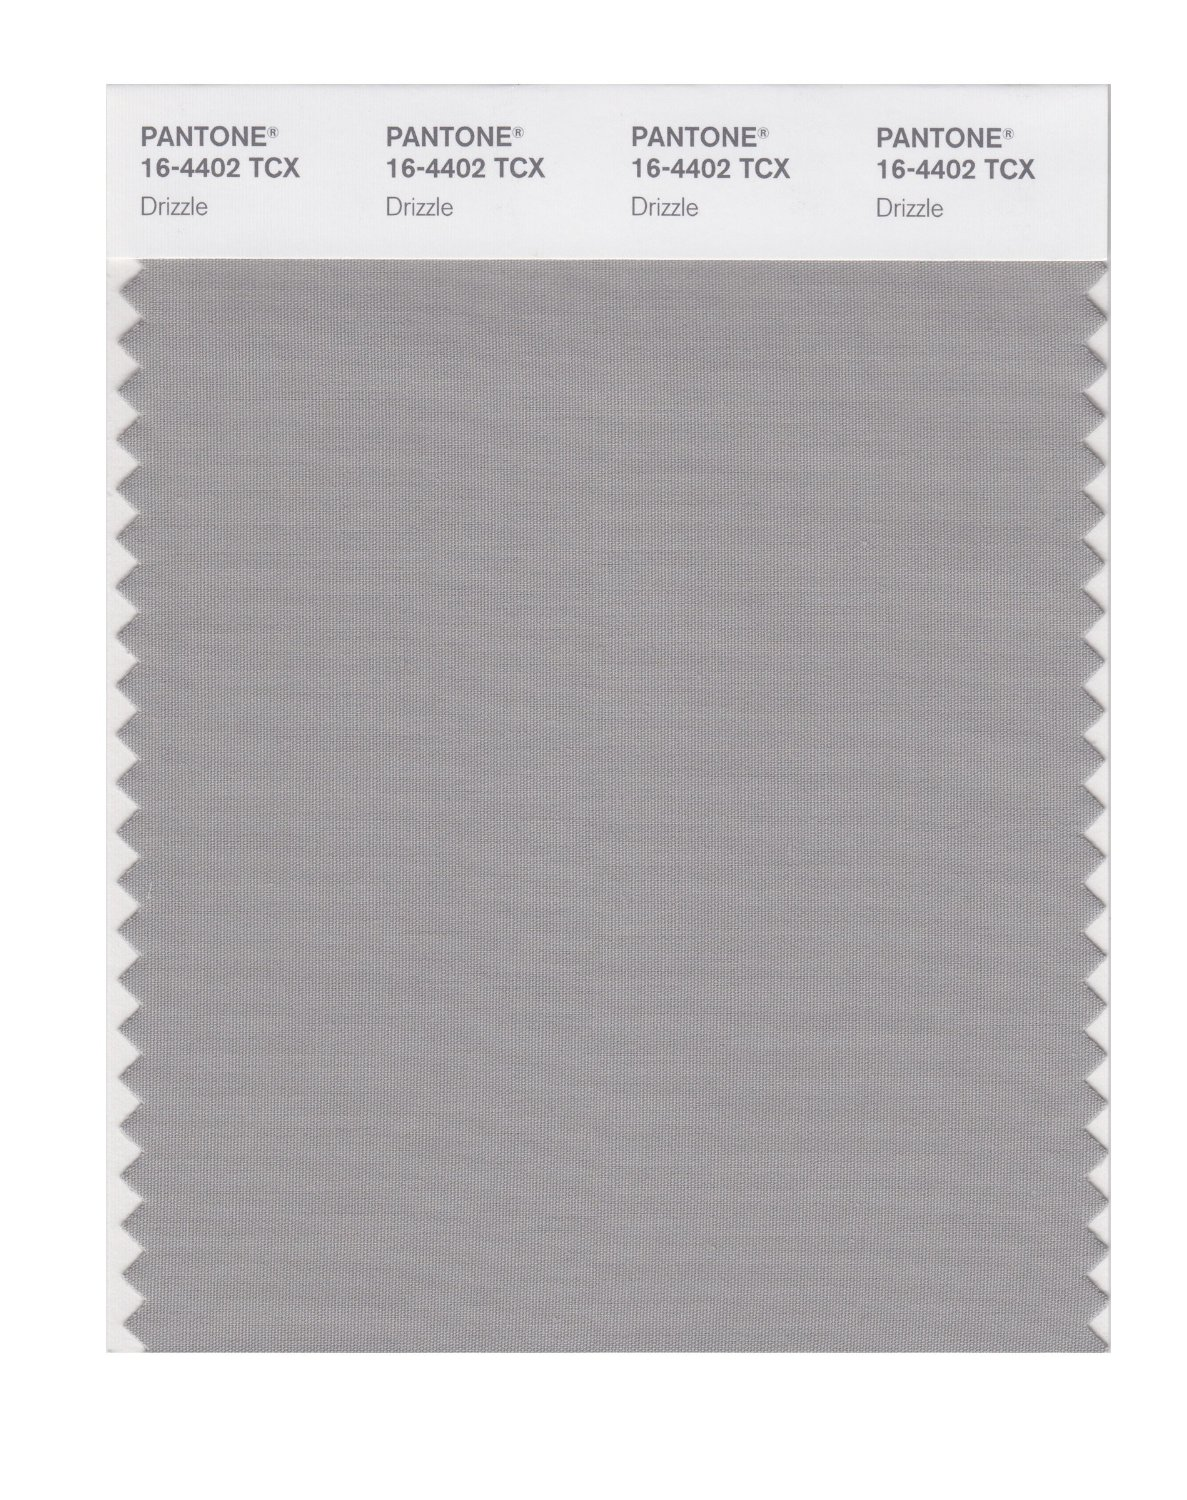 Pantone Smart Swatch 16-4402 Drizzle